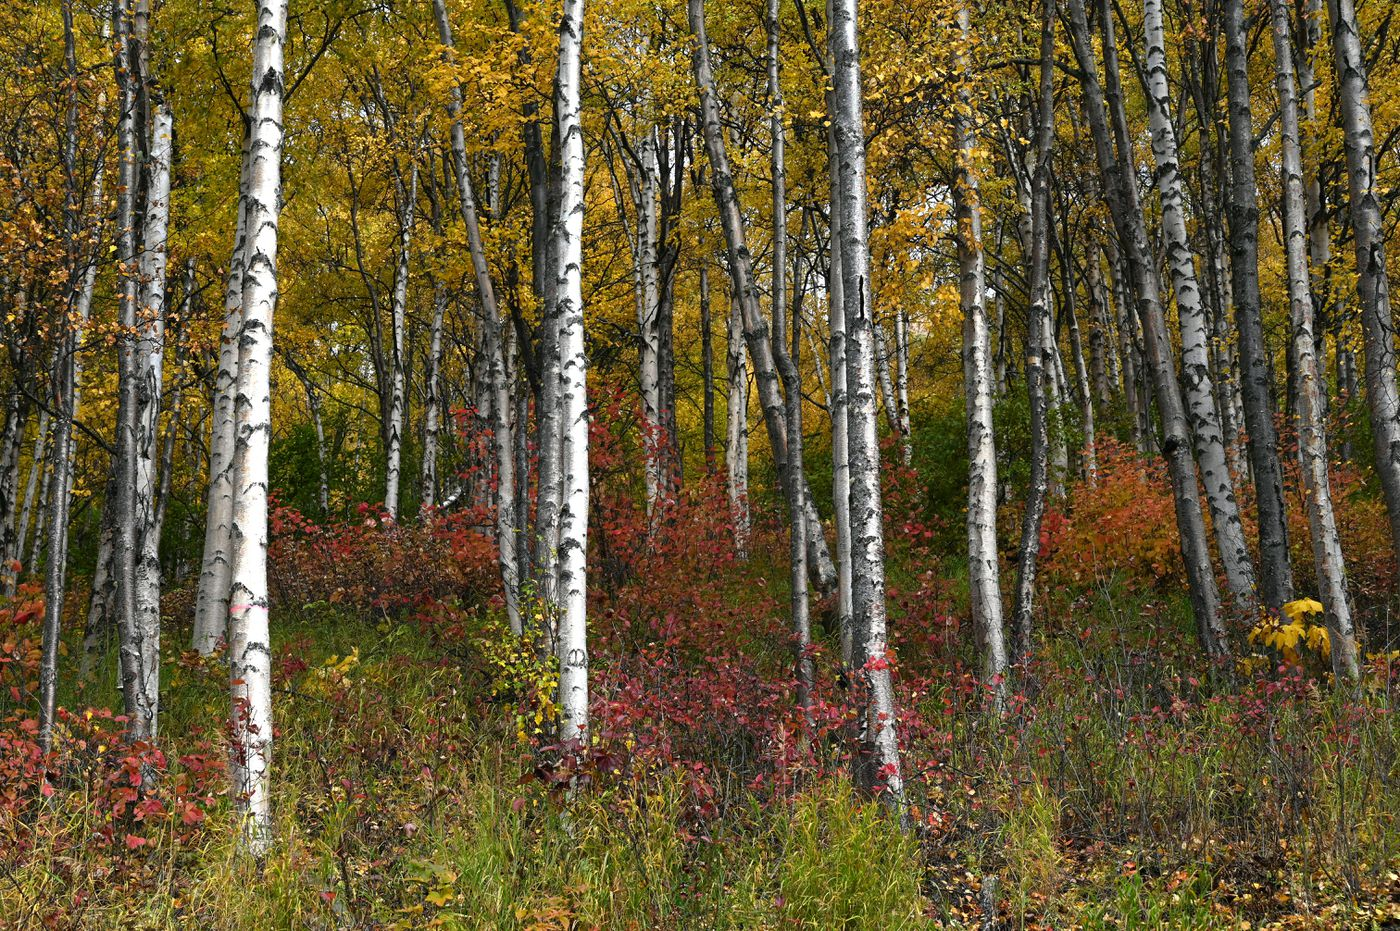 Fall colors light up the Eagle River valley Saturday, Sept. 26, 2020. (Anne Raup / ADN)